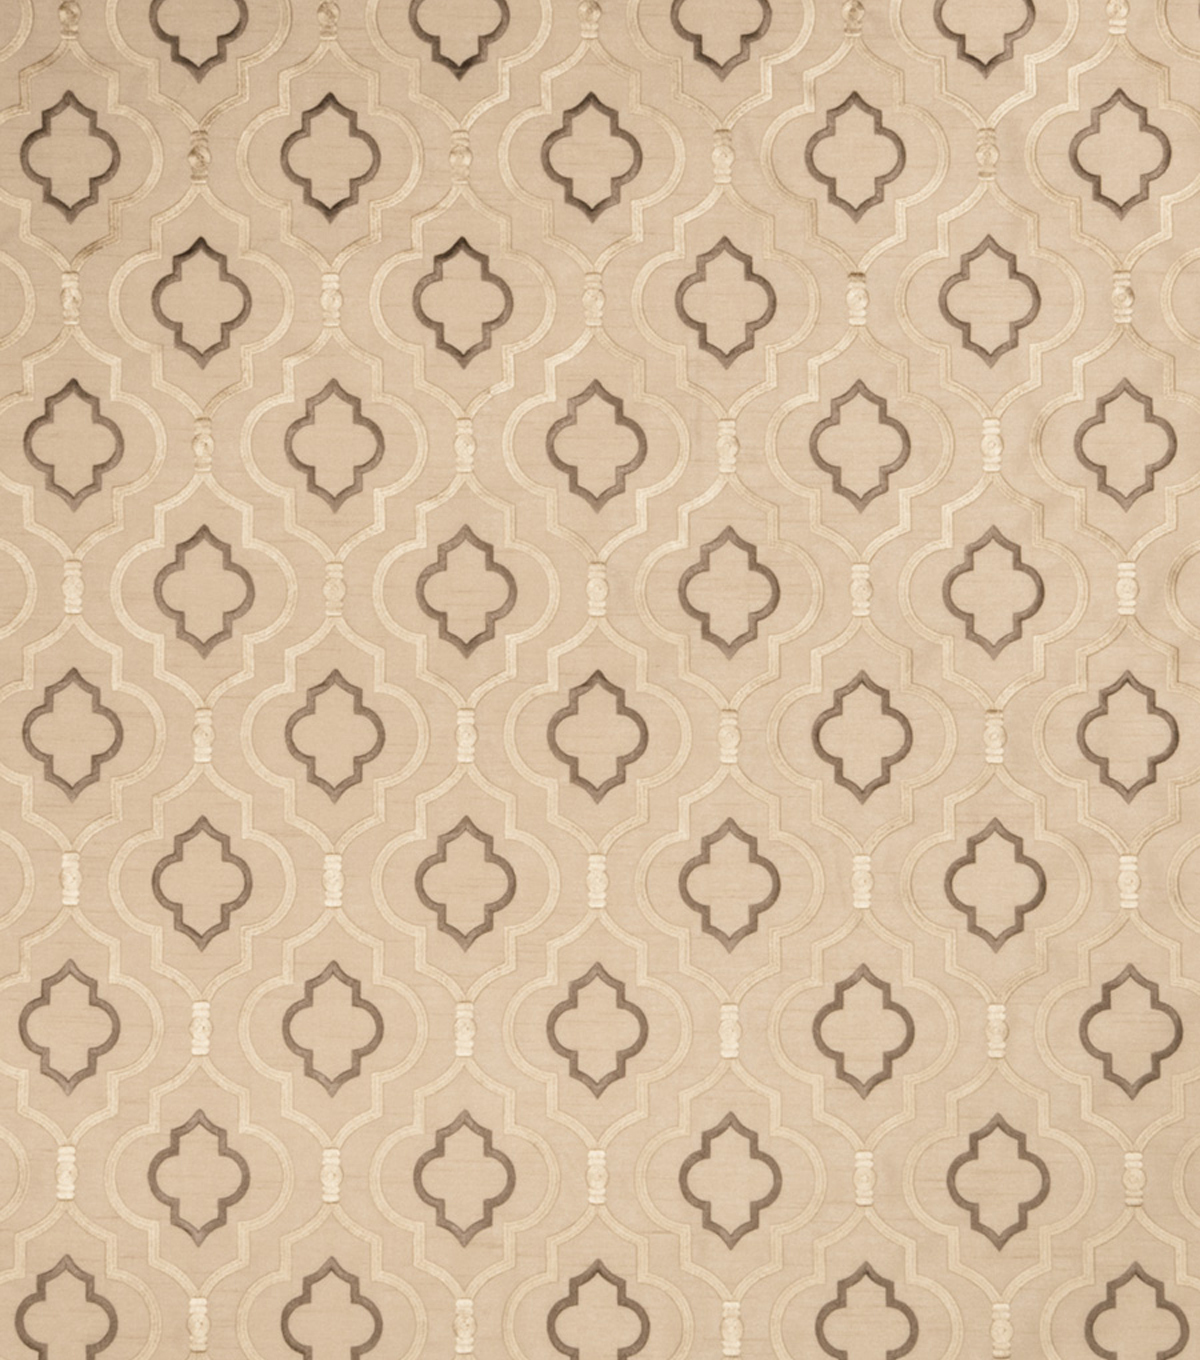 Home Decor 8\u0022x8\u0022 Fabric Swatch-SMC Designs Acoustice / Taupe